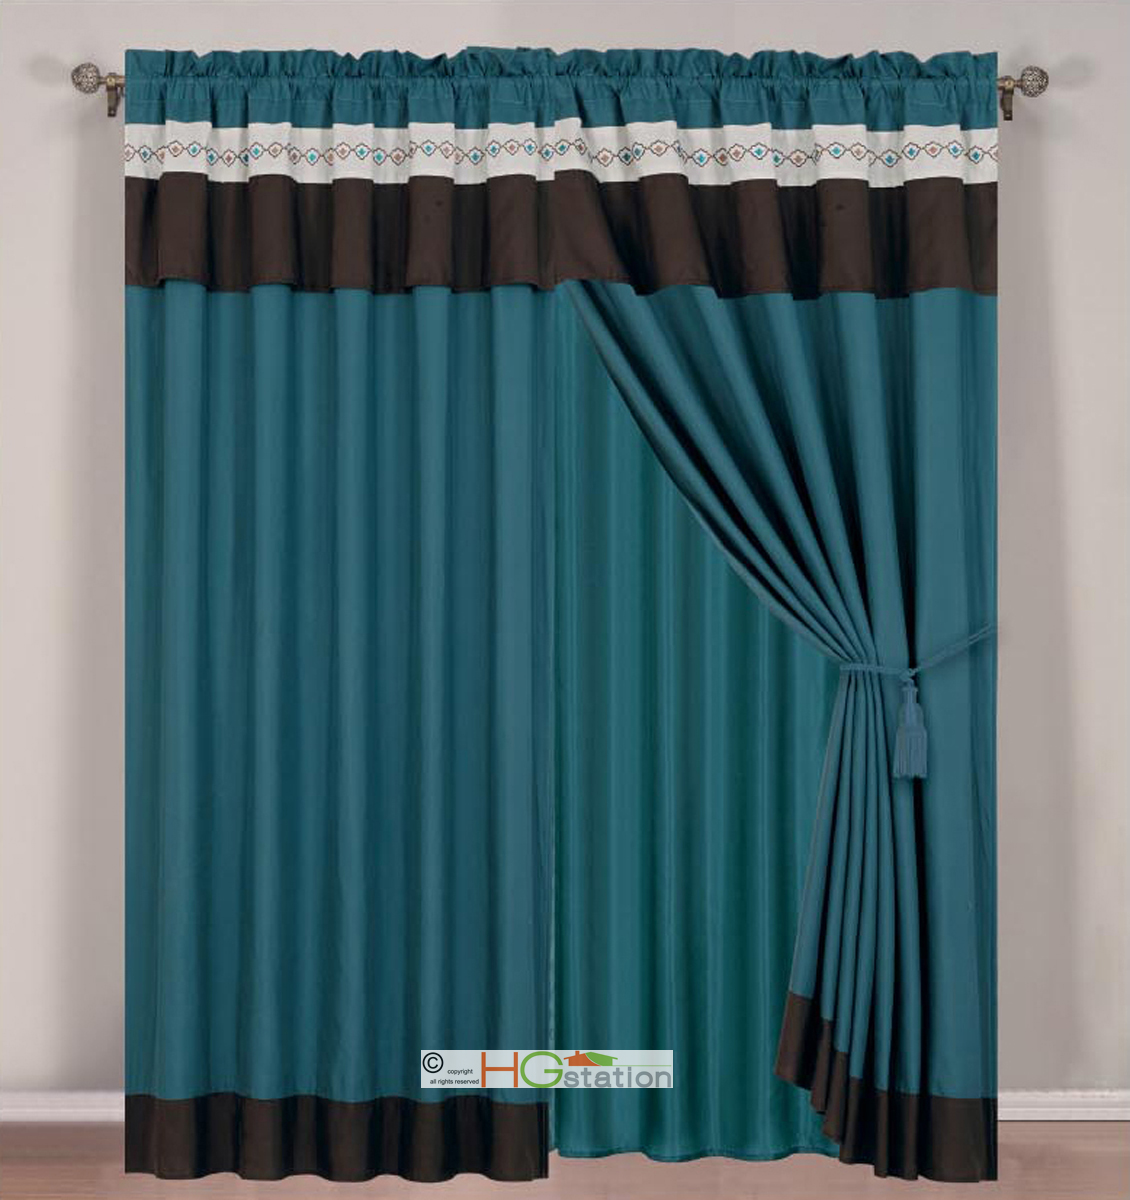 Hg Station 4 Pc Floral Damask Embroidery Curtain Set Teal